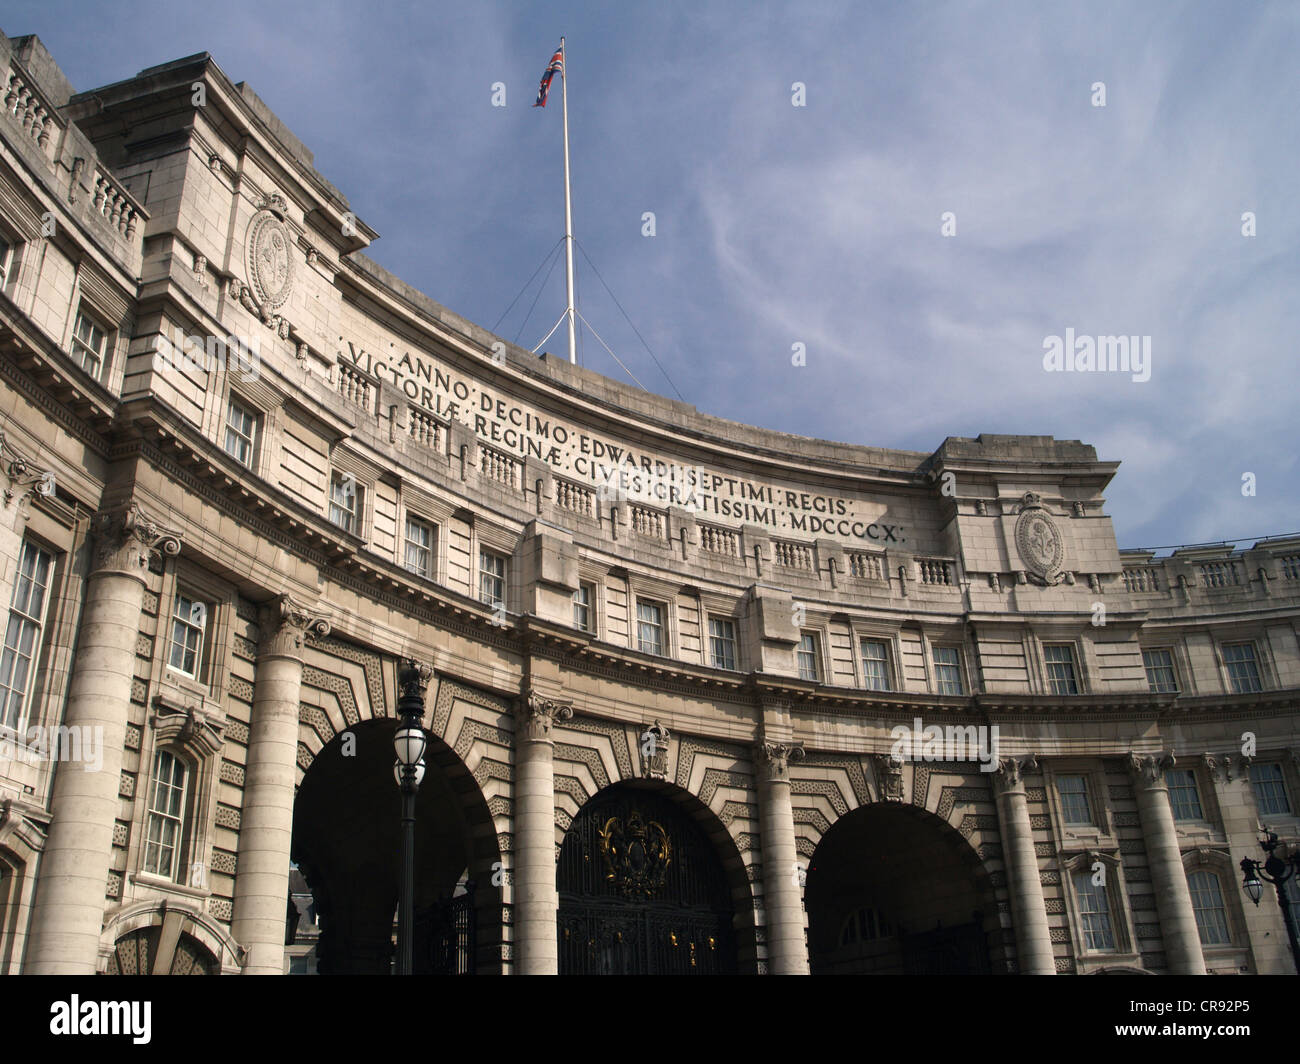 Admiralty Arch in London against a blue sky - Stock Image